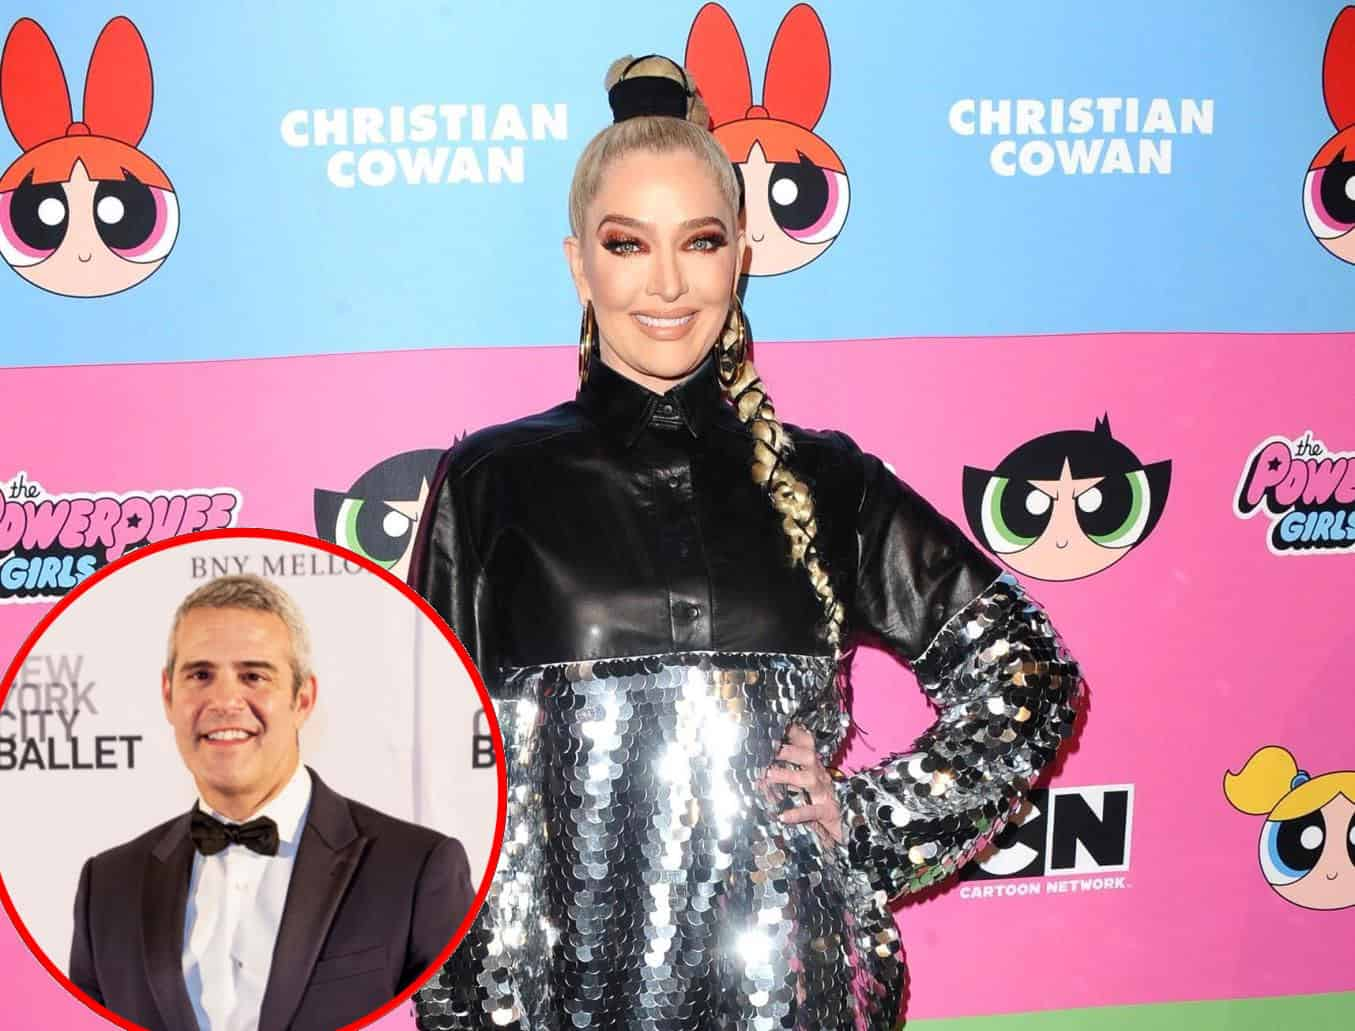 Erika Jayne Reveals the Insane Gift She Gave to Andy Cohen's Son! Plus She Explains How She Avoids Getting Fired from RHOBH